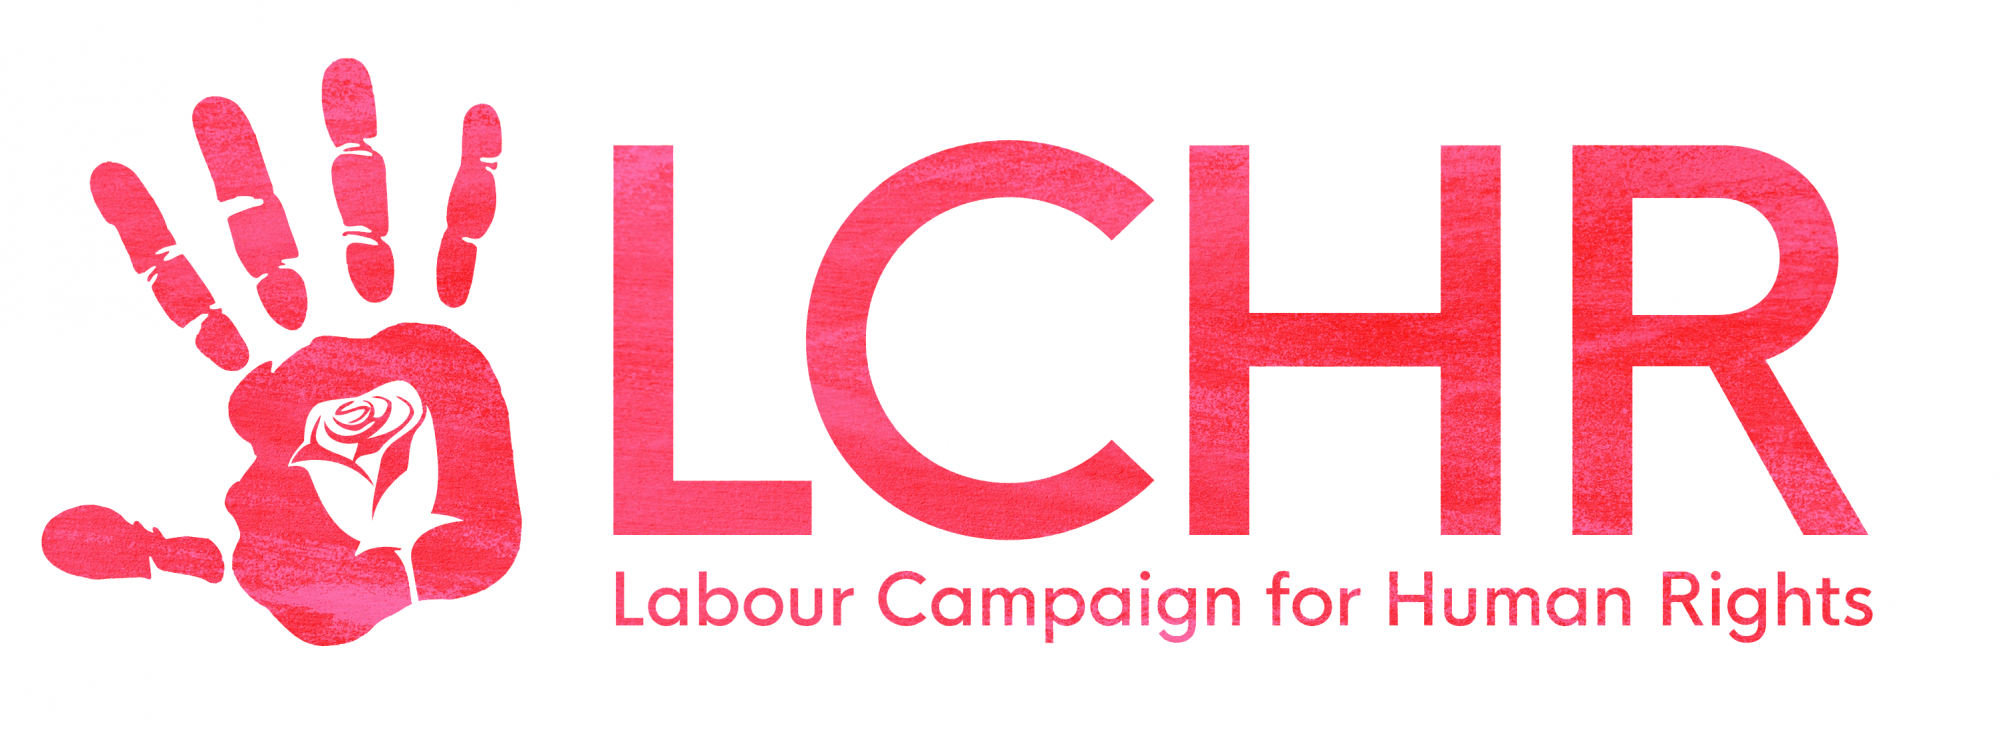 Labour Campaign for Human Rights